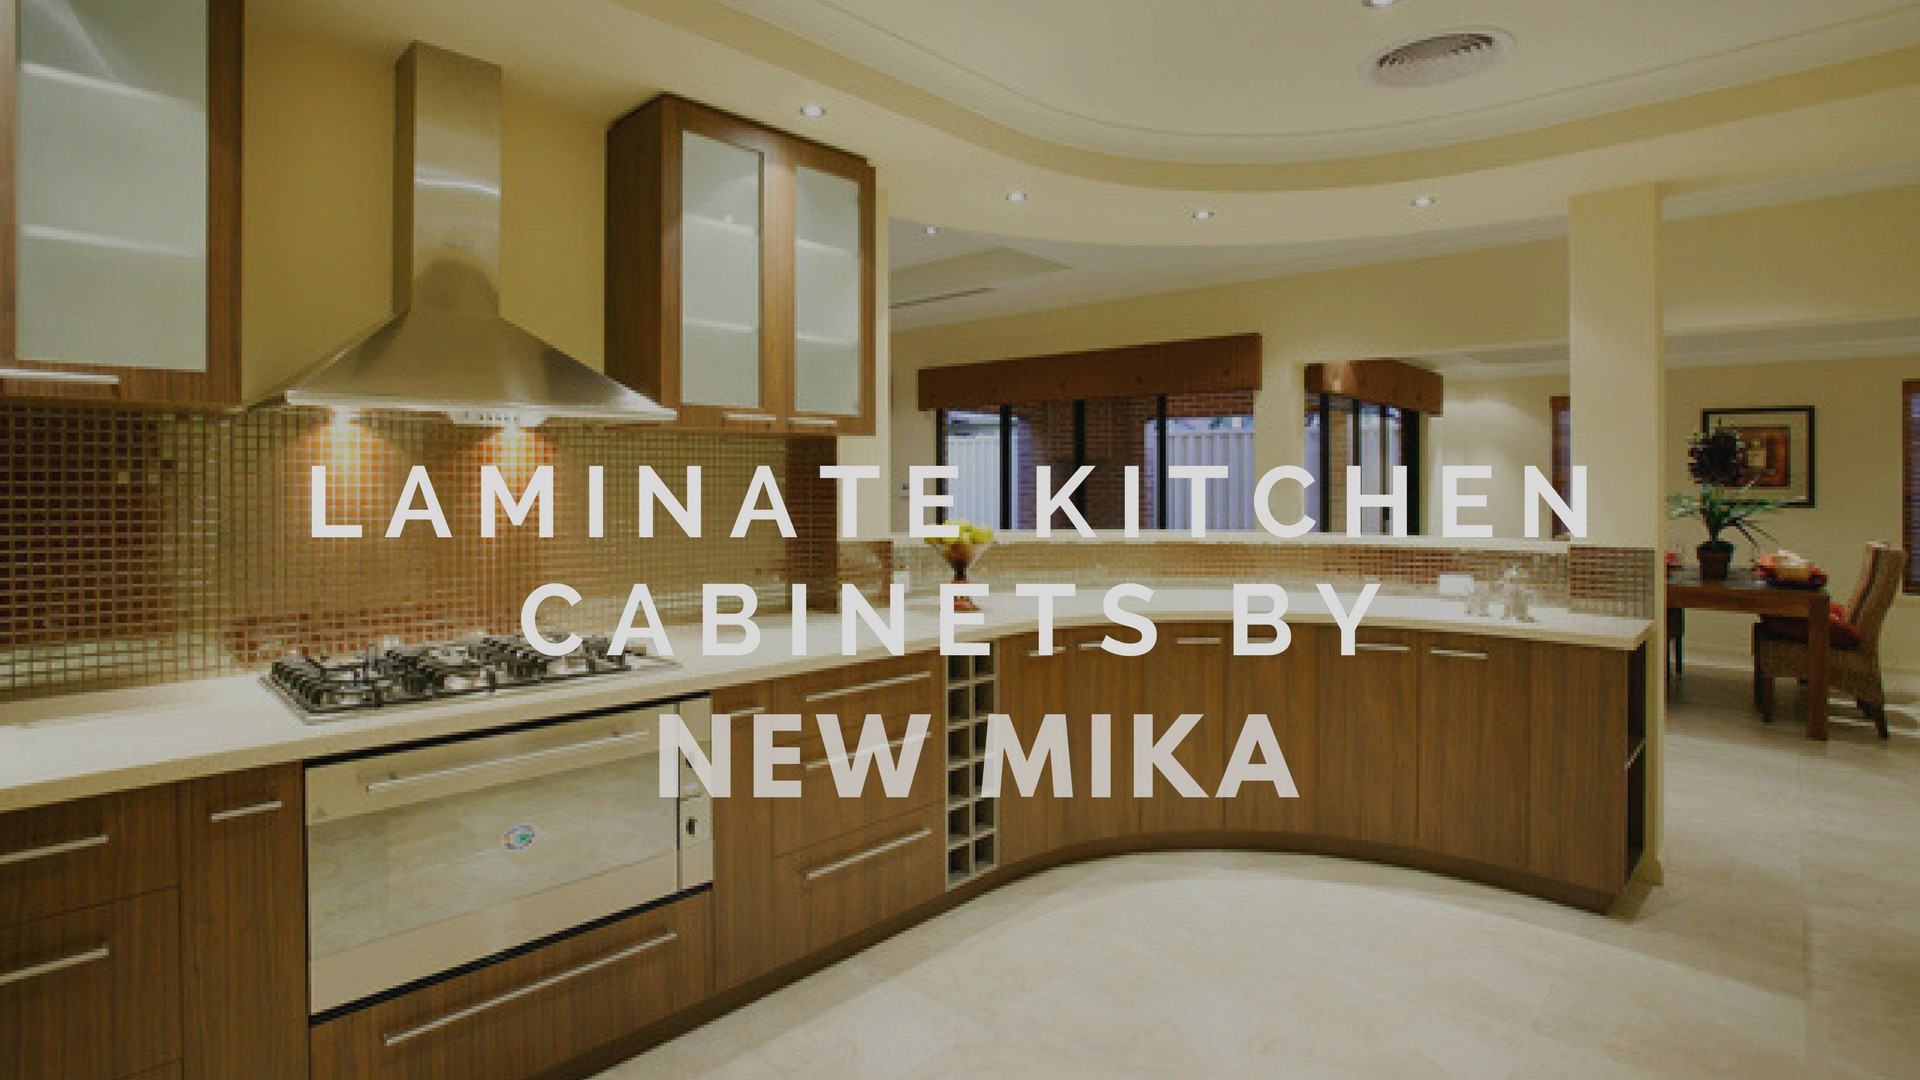 Why Choose Laminate Kitchen Cabinets Over Solid Wood Ones